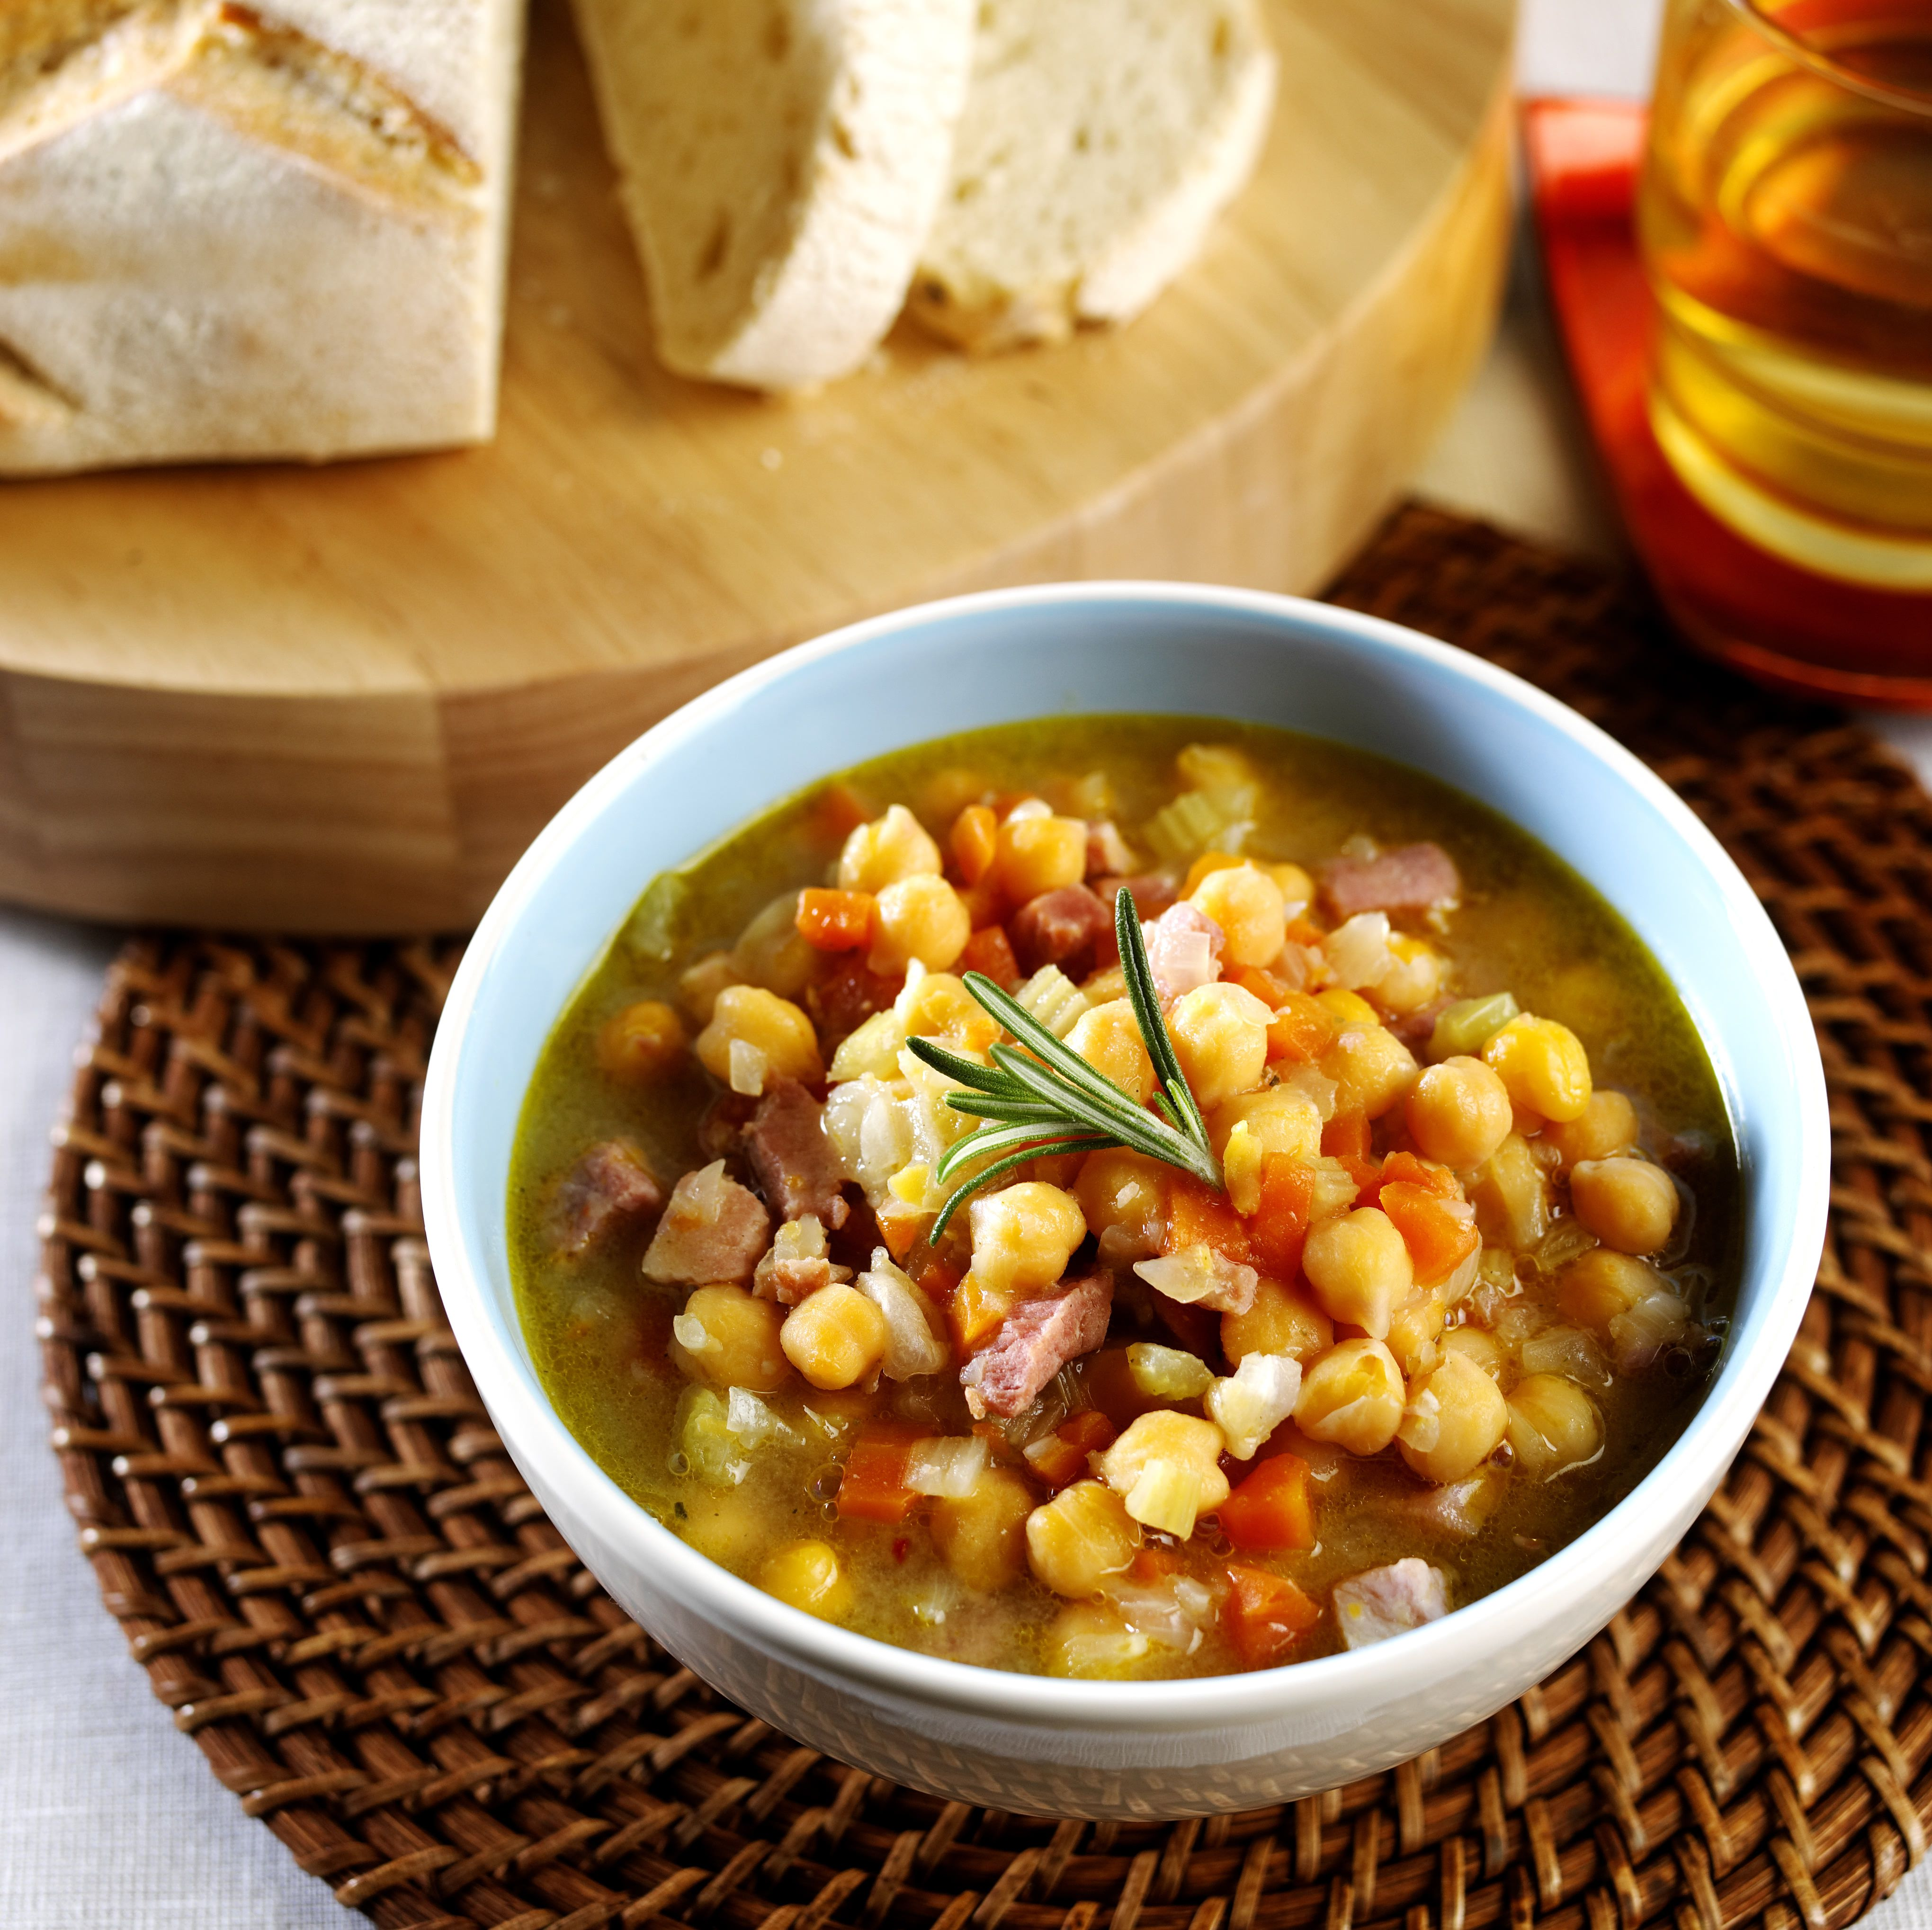 Ham and chickpea soup